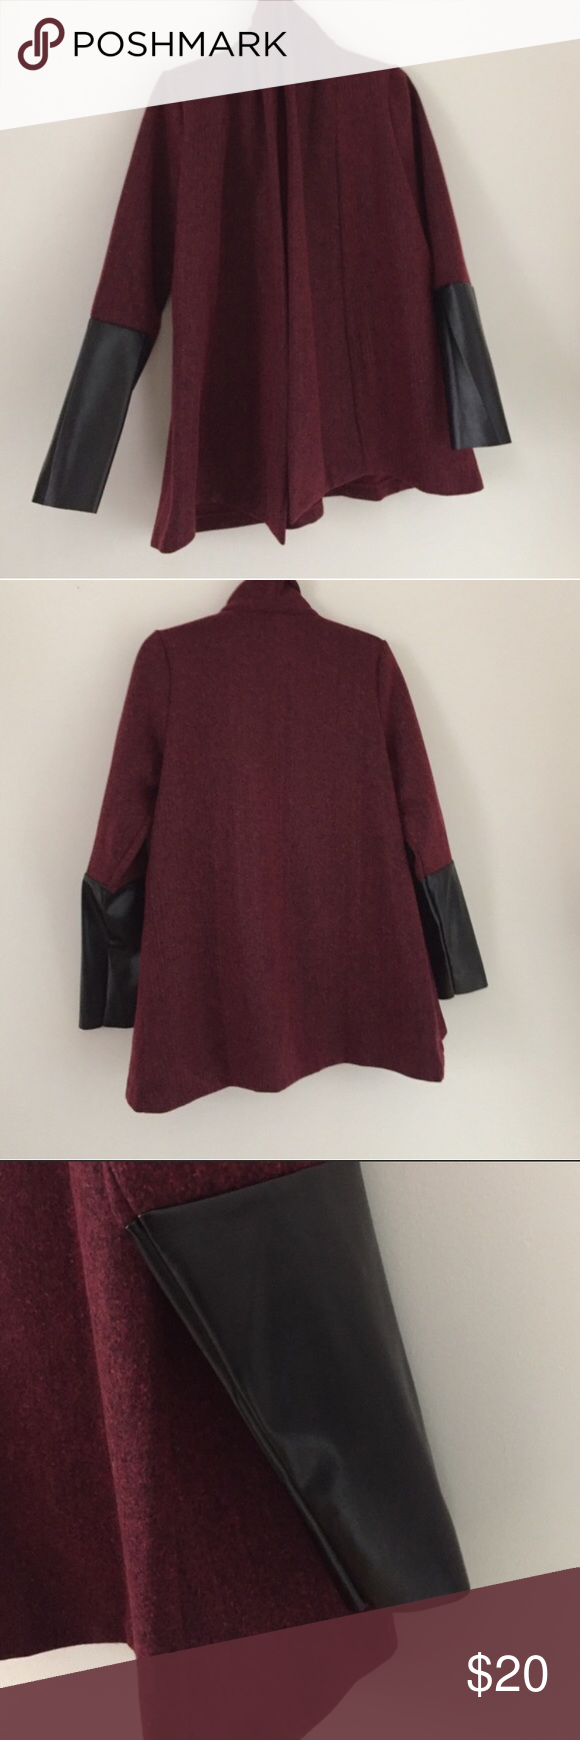 Burgundy faux leather sleeve jacket By Vanessa Williams